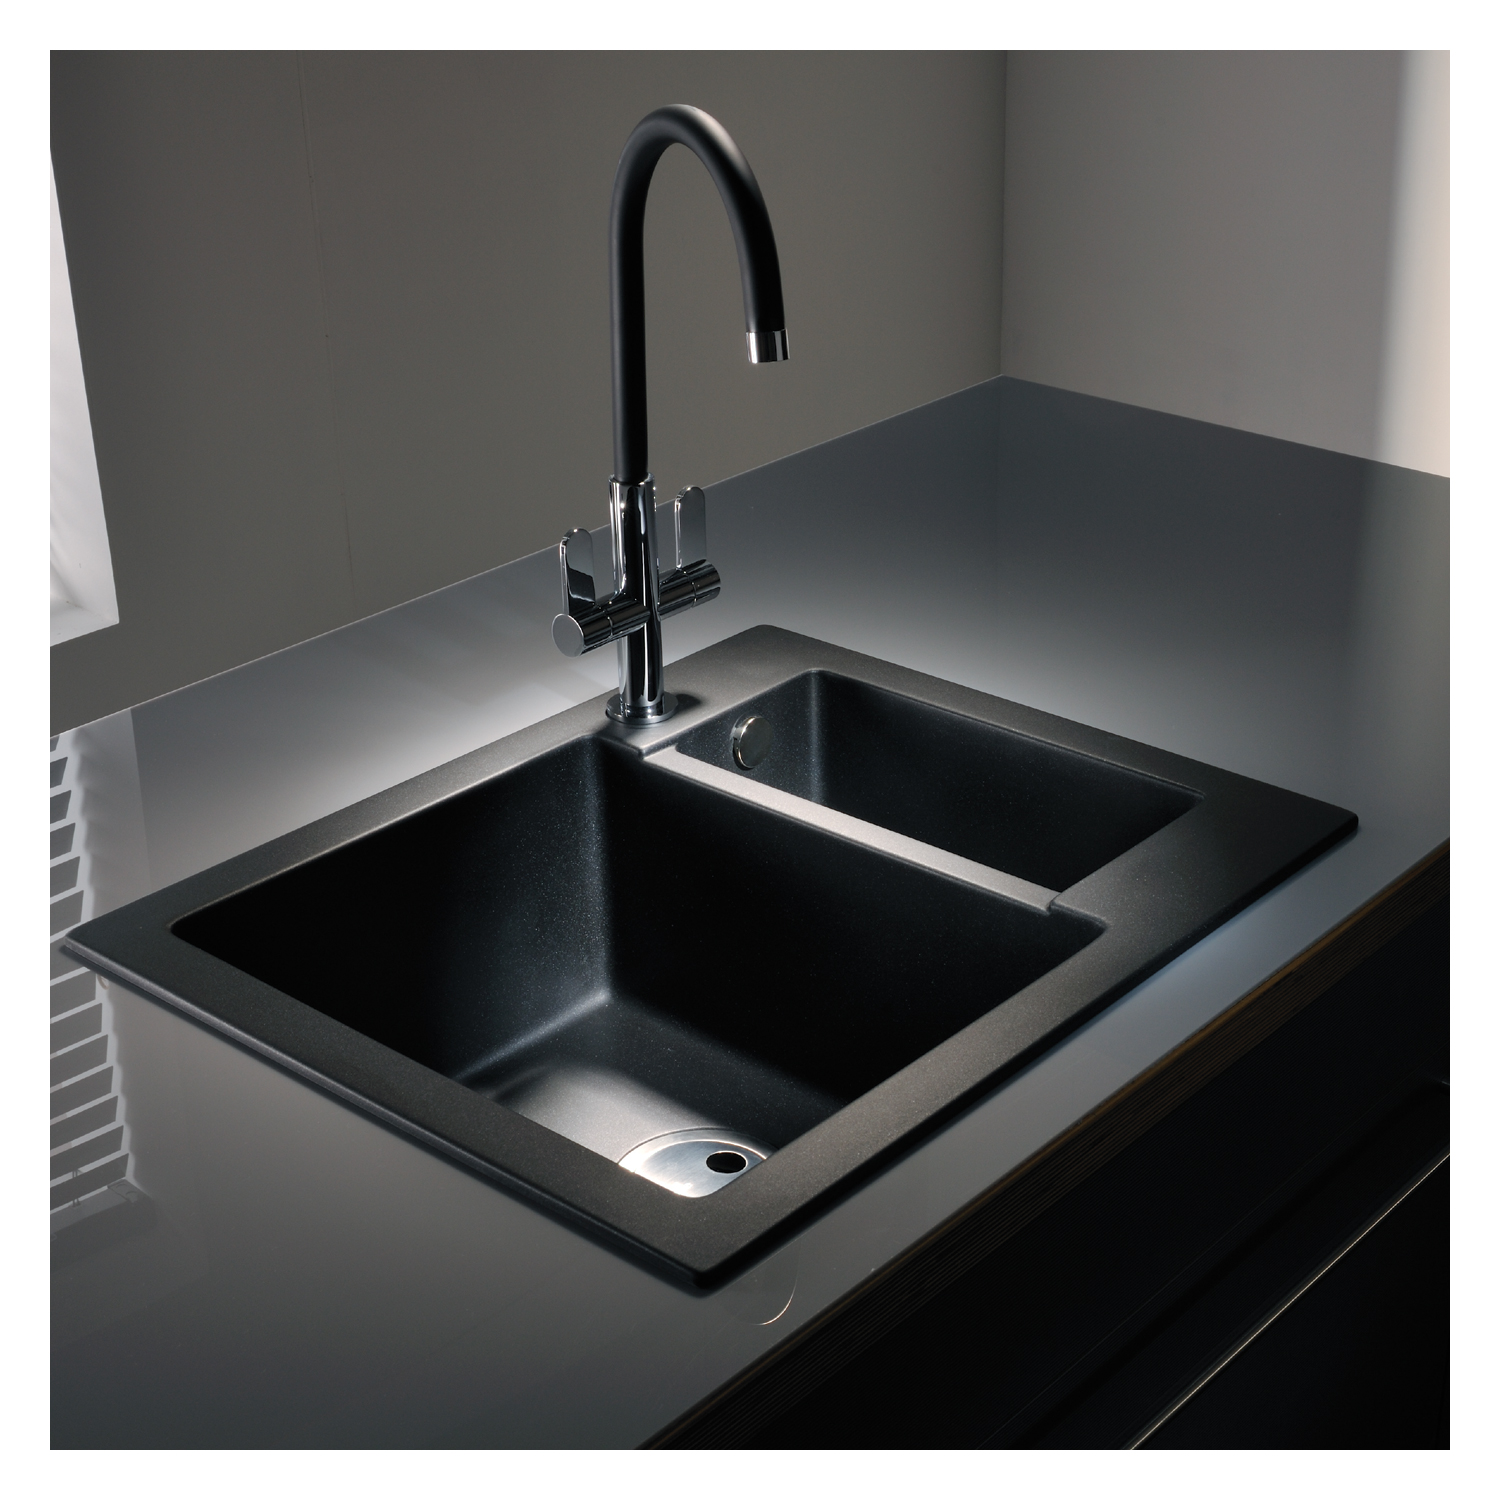 Kitchen Sink With Drainer Or Not - Image Sink and Toaster ...